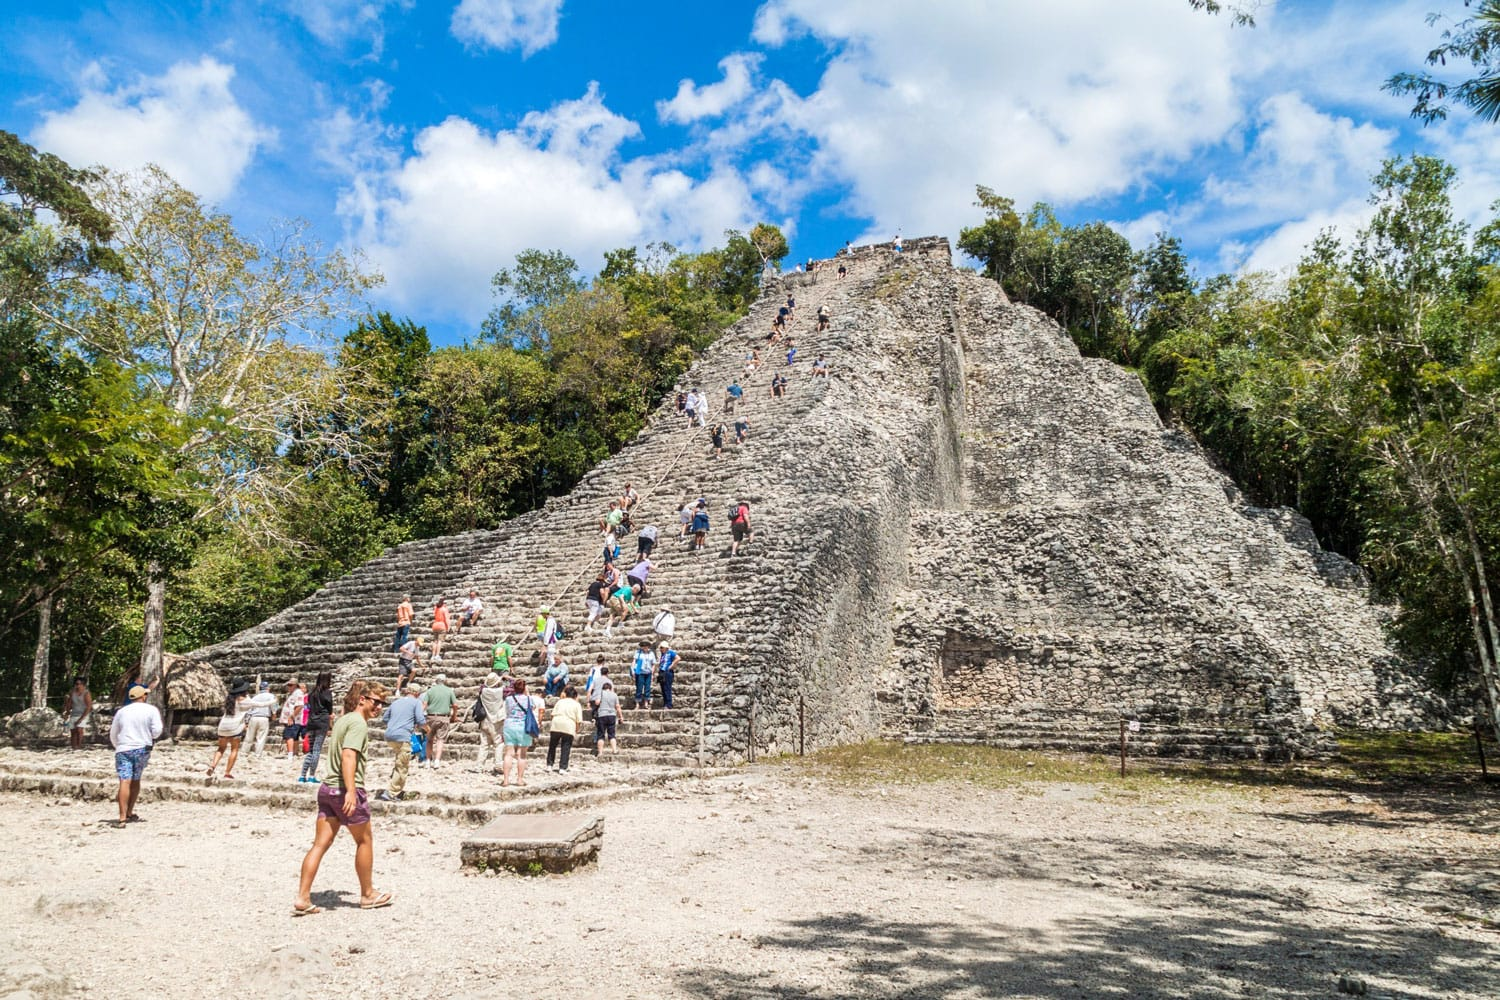 Tourist climb the Pyramid Nohoch Mul at the ruins of the Mayan city Coba, Mexico